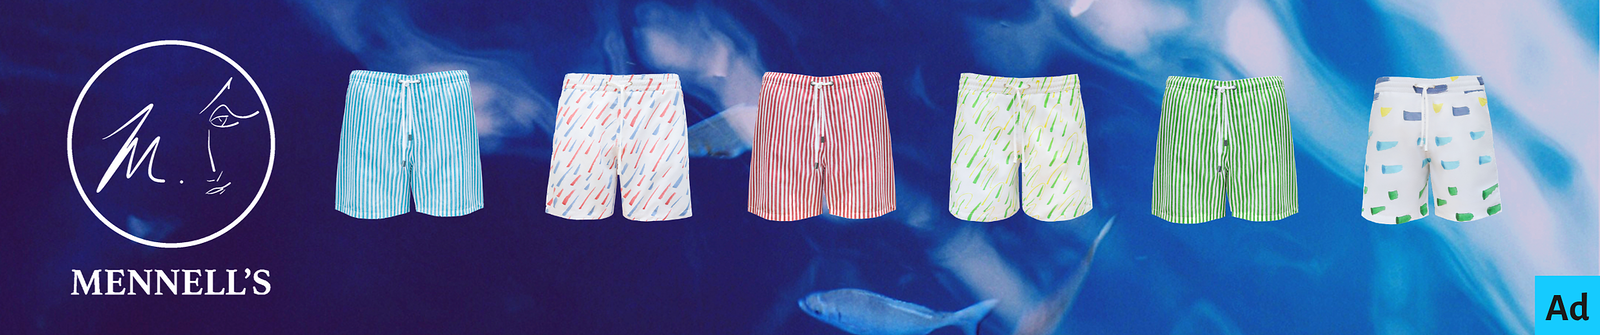 Mennell's Swimwear Swimming Shorts Advert for Celebrity WotNot